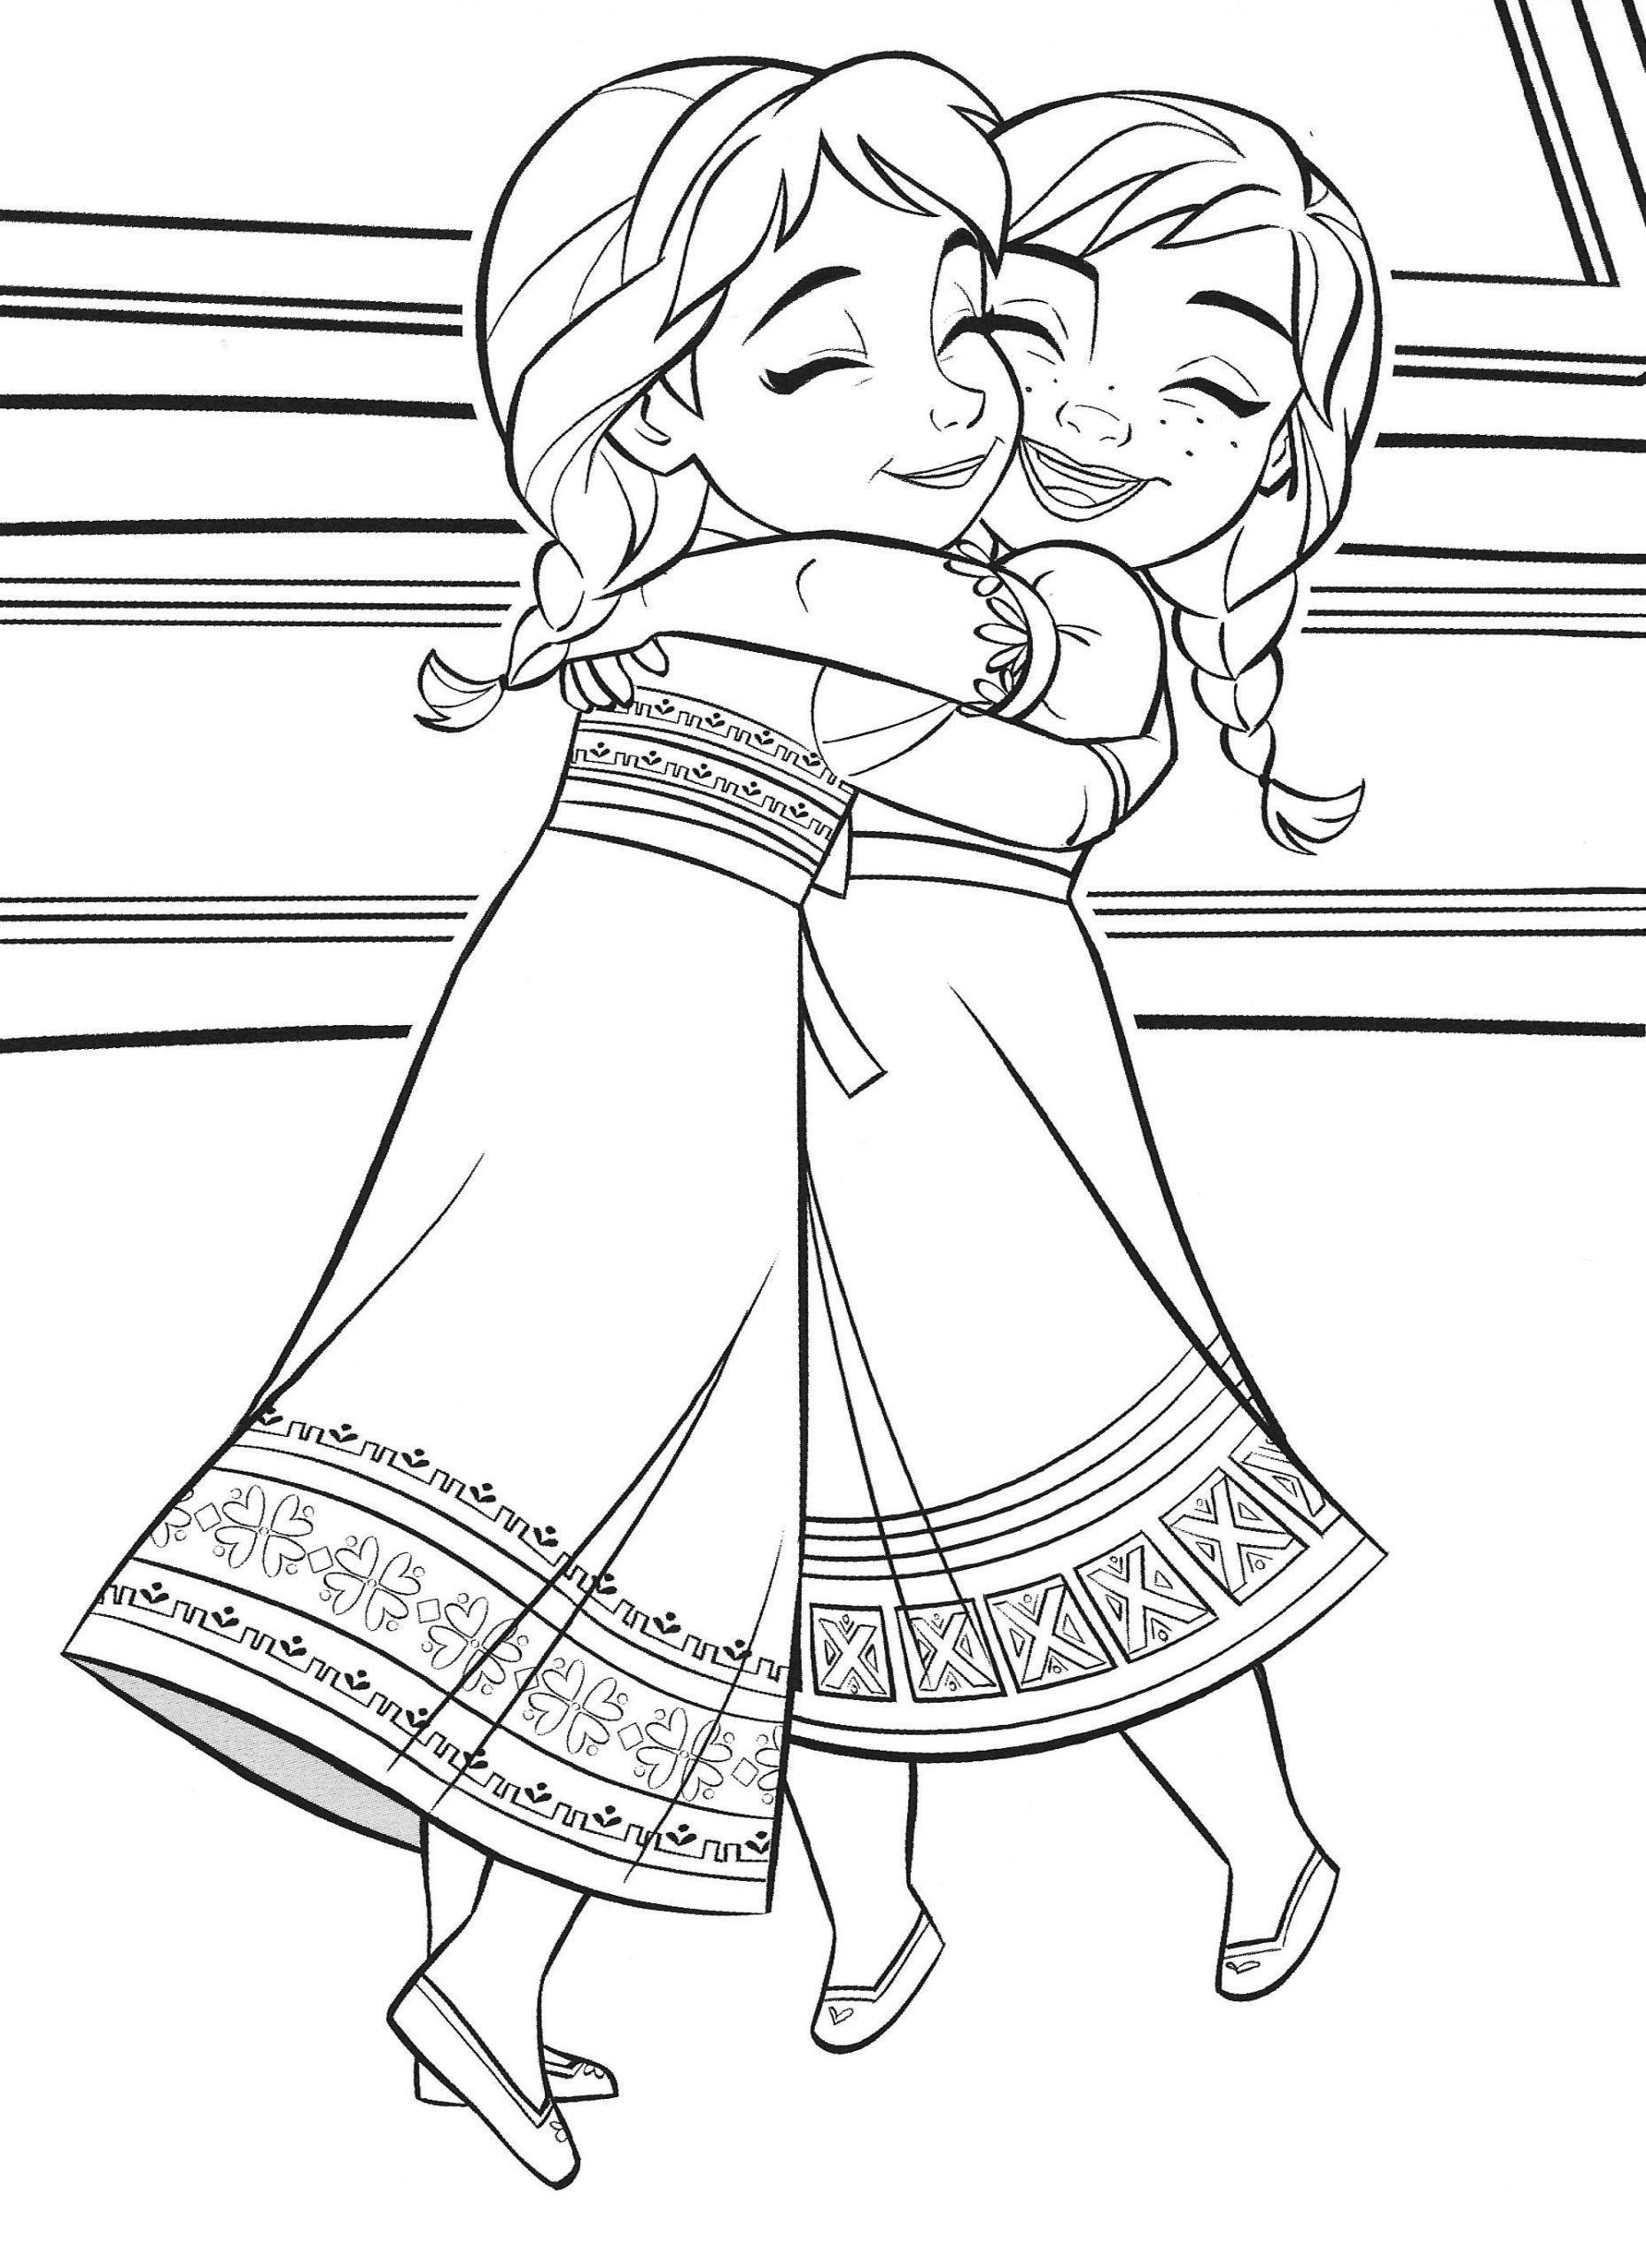 Frozen Coloring Pages Printables Pin On Coloring Pages Elsa Coloring Pages Frozen Coloring Pages Disney Coloring Sheets